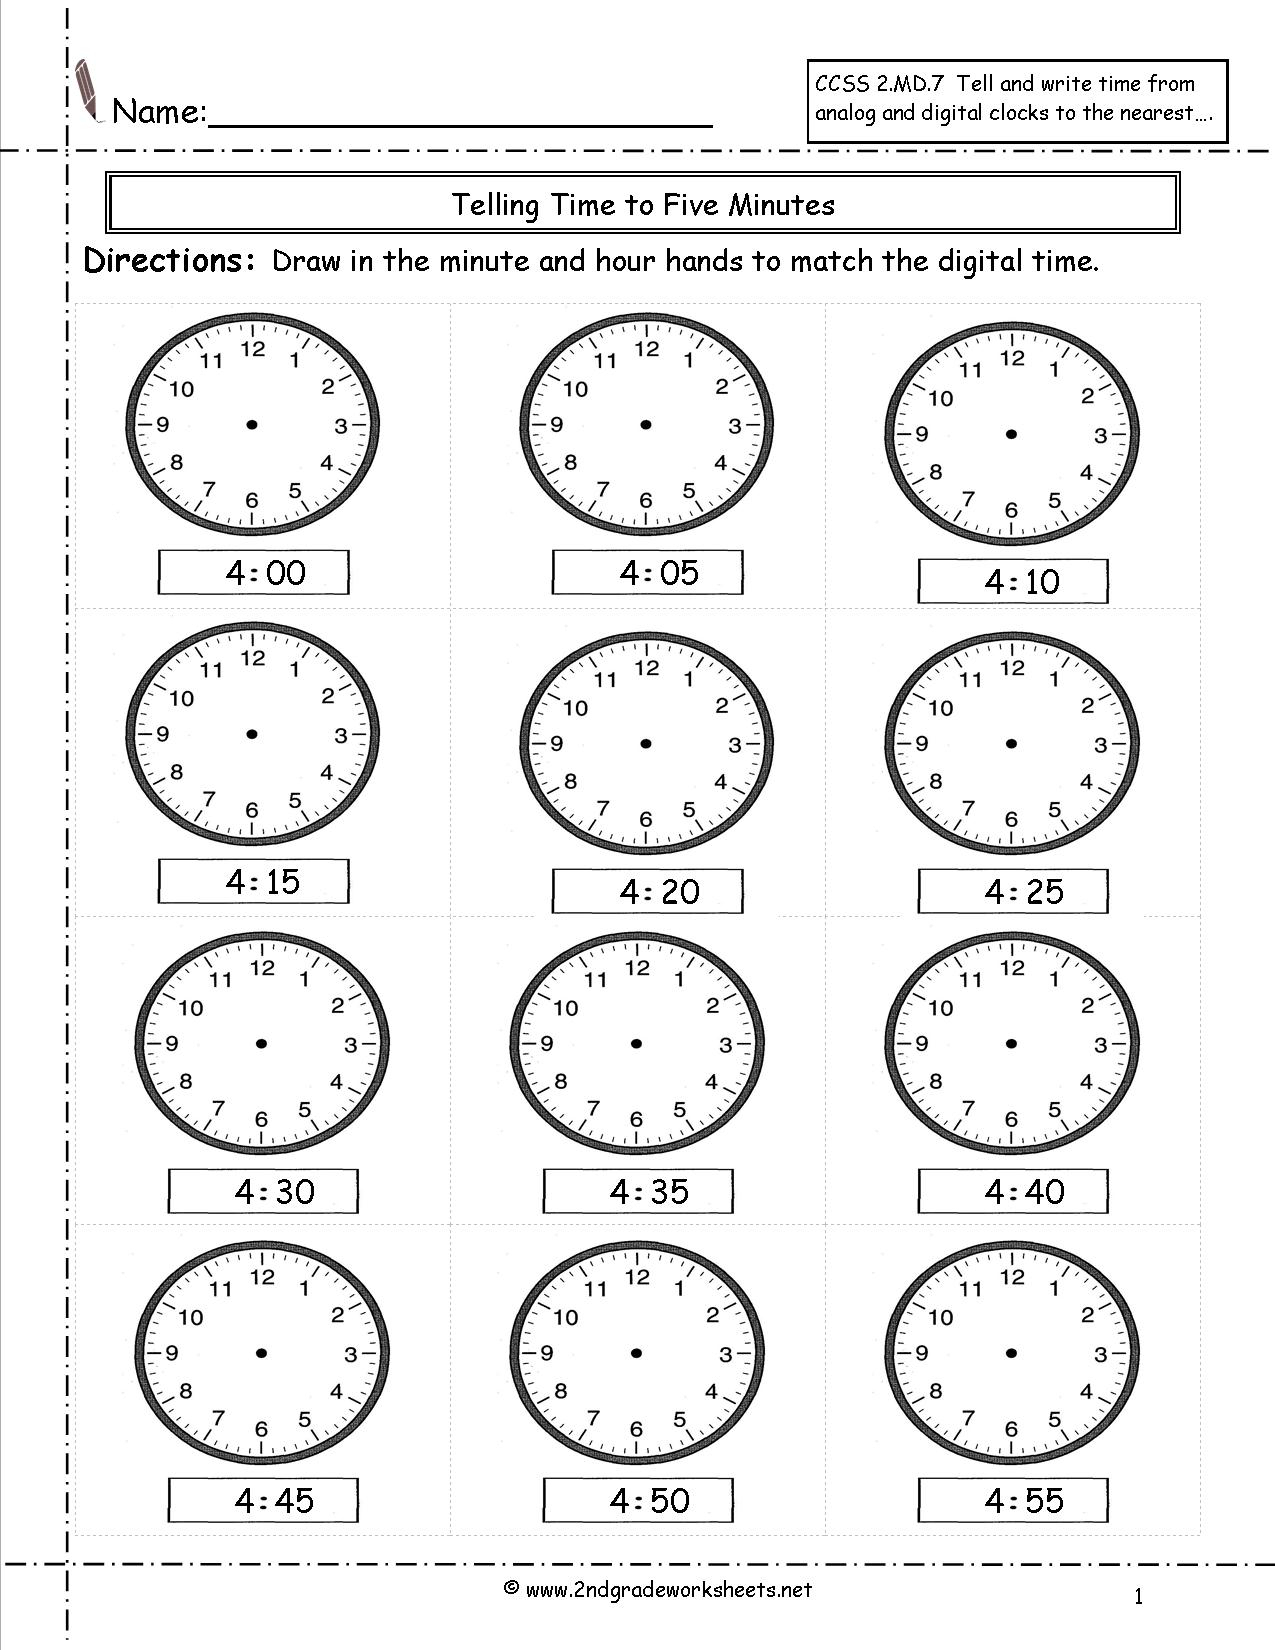 Telling Time Worksheet Printable